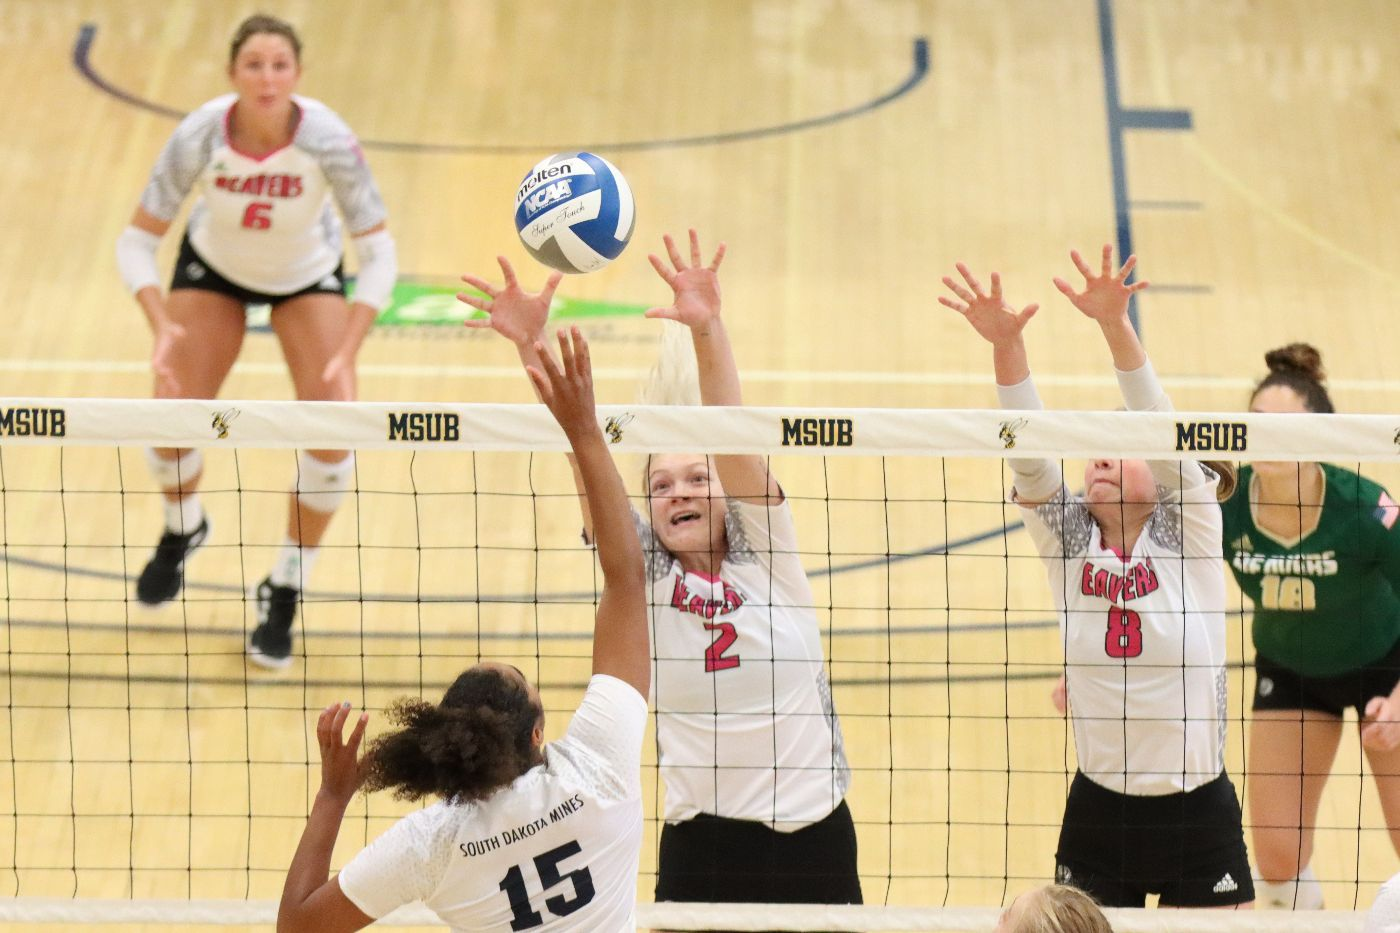 Beavers fall in both matches to open play at Yellowjacket Invitational